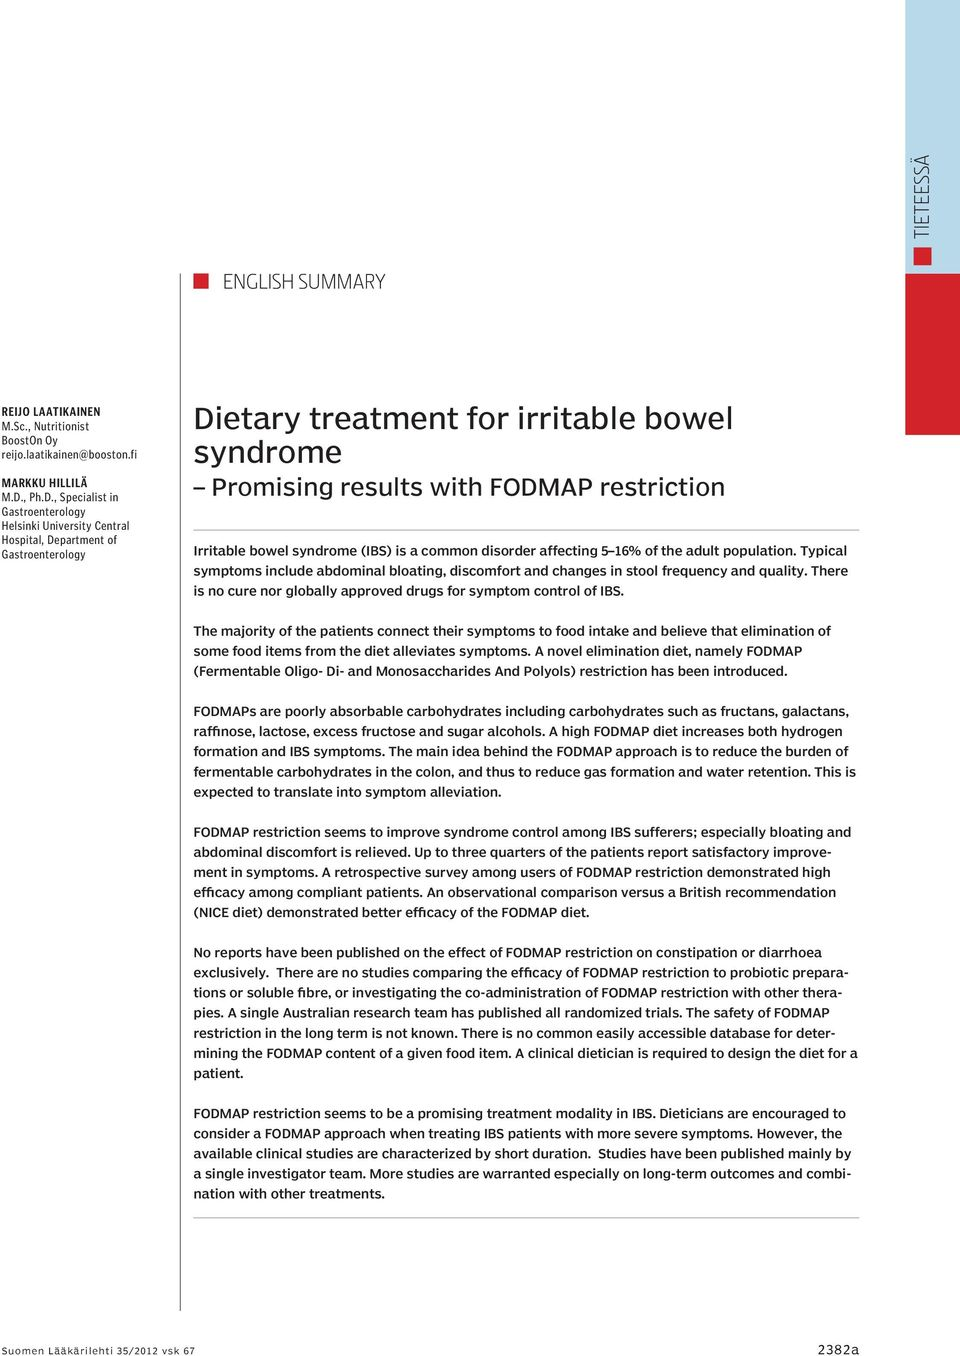 , Specialist in Gastroenterology Helsinki University Central Hospital, Department of Gastroenterology Dietary treatment for irritable bowel syndrome Promising results with FODMAP restriction